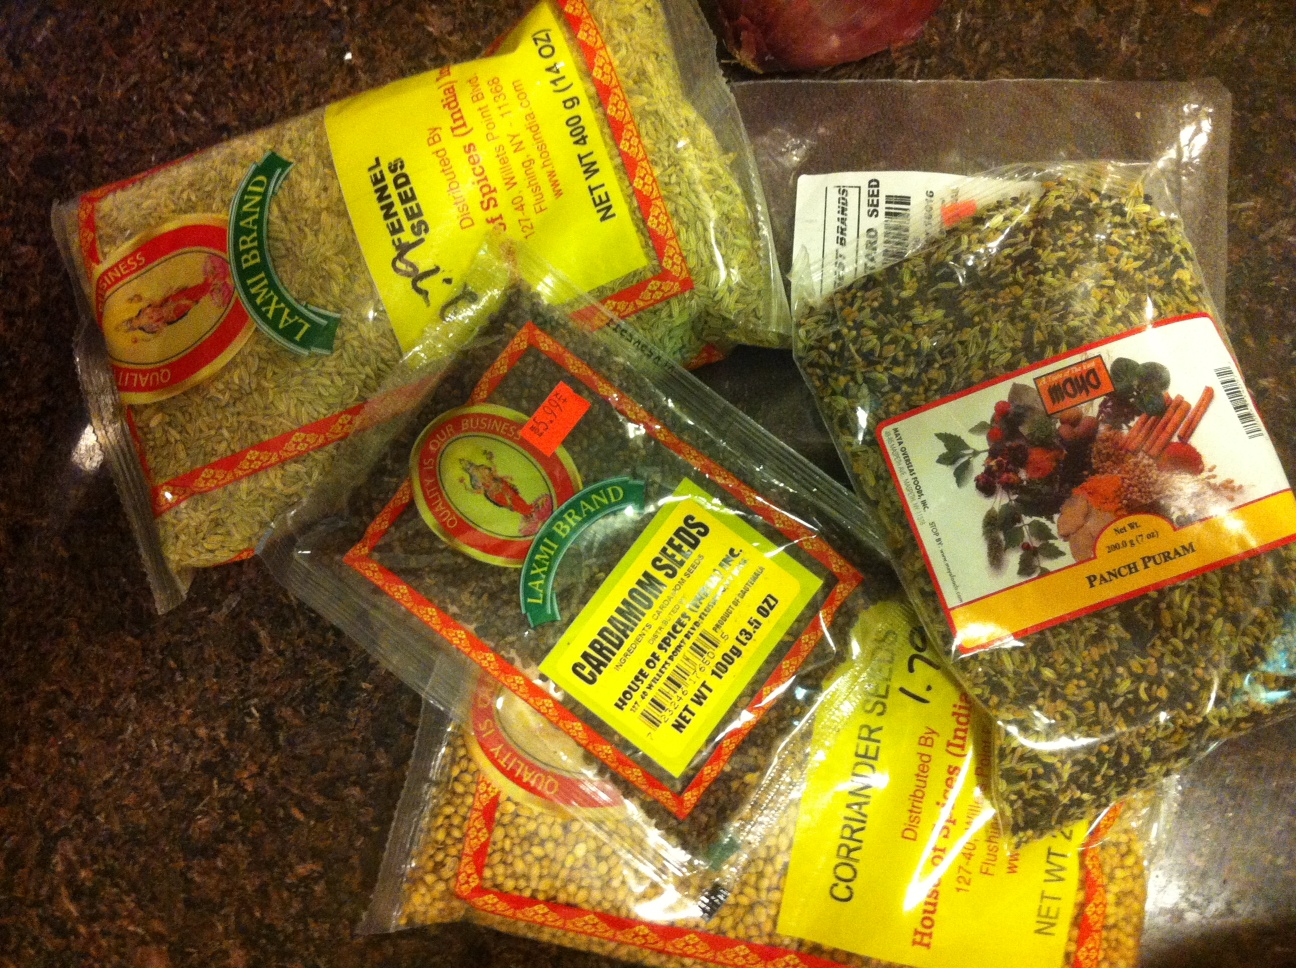 spices from Bengal and India